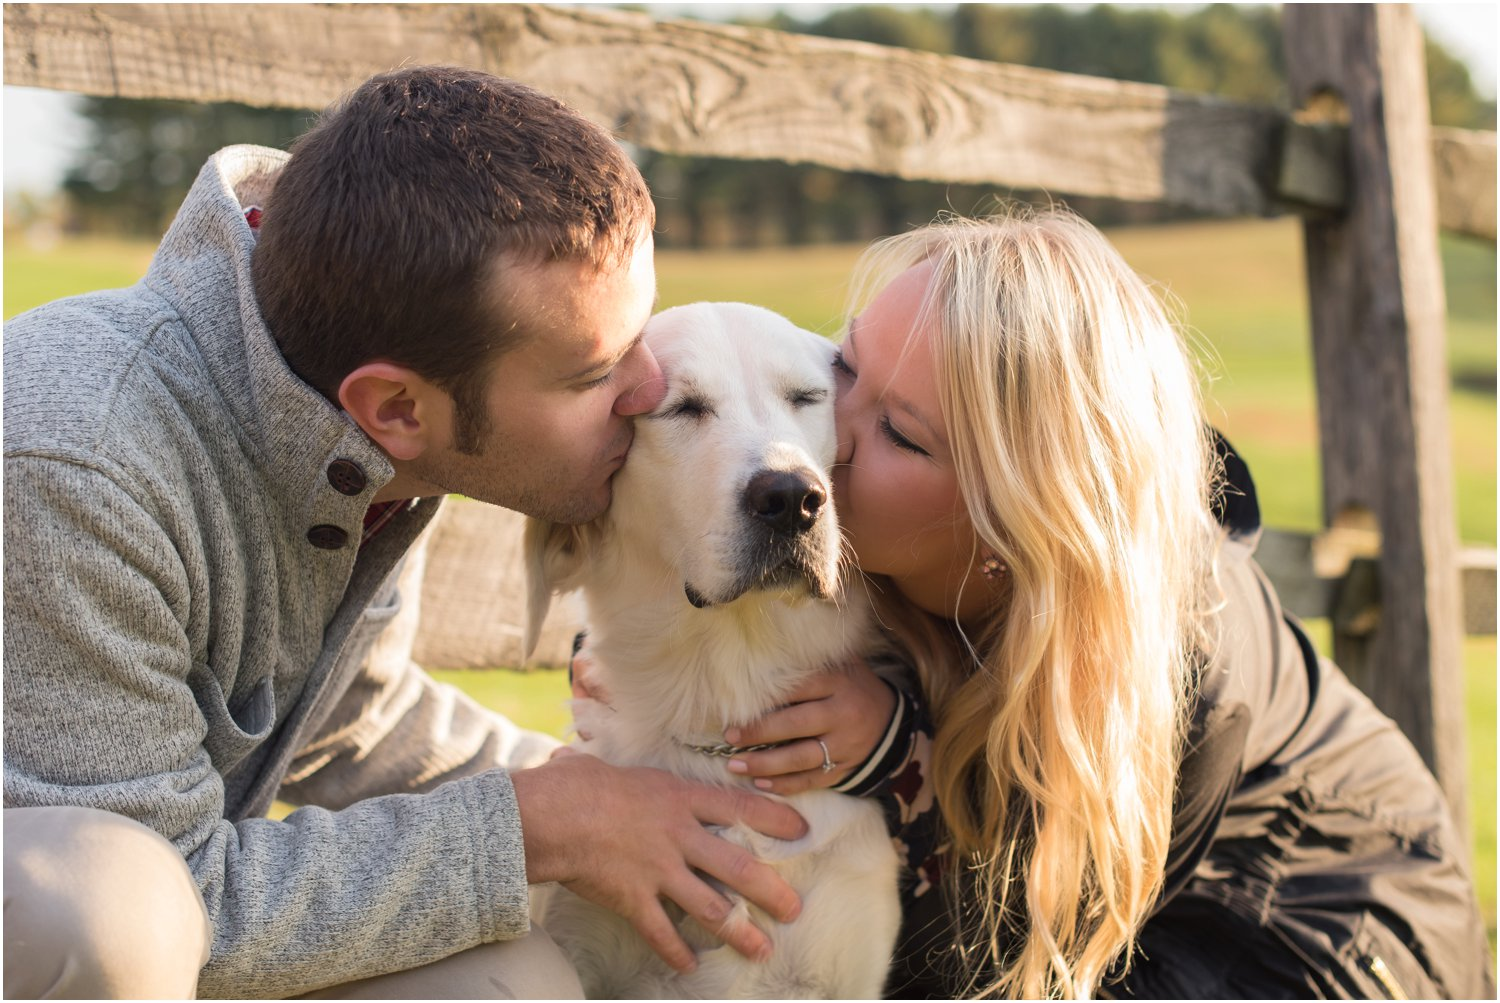 Beachmont-Christian-Camp-Fall-Engagement-Session-Chelsea-Blanch-Photography-7